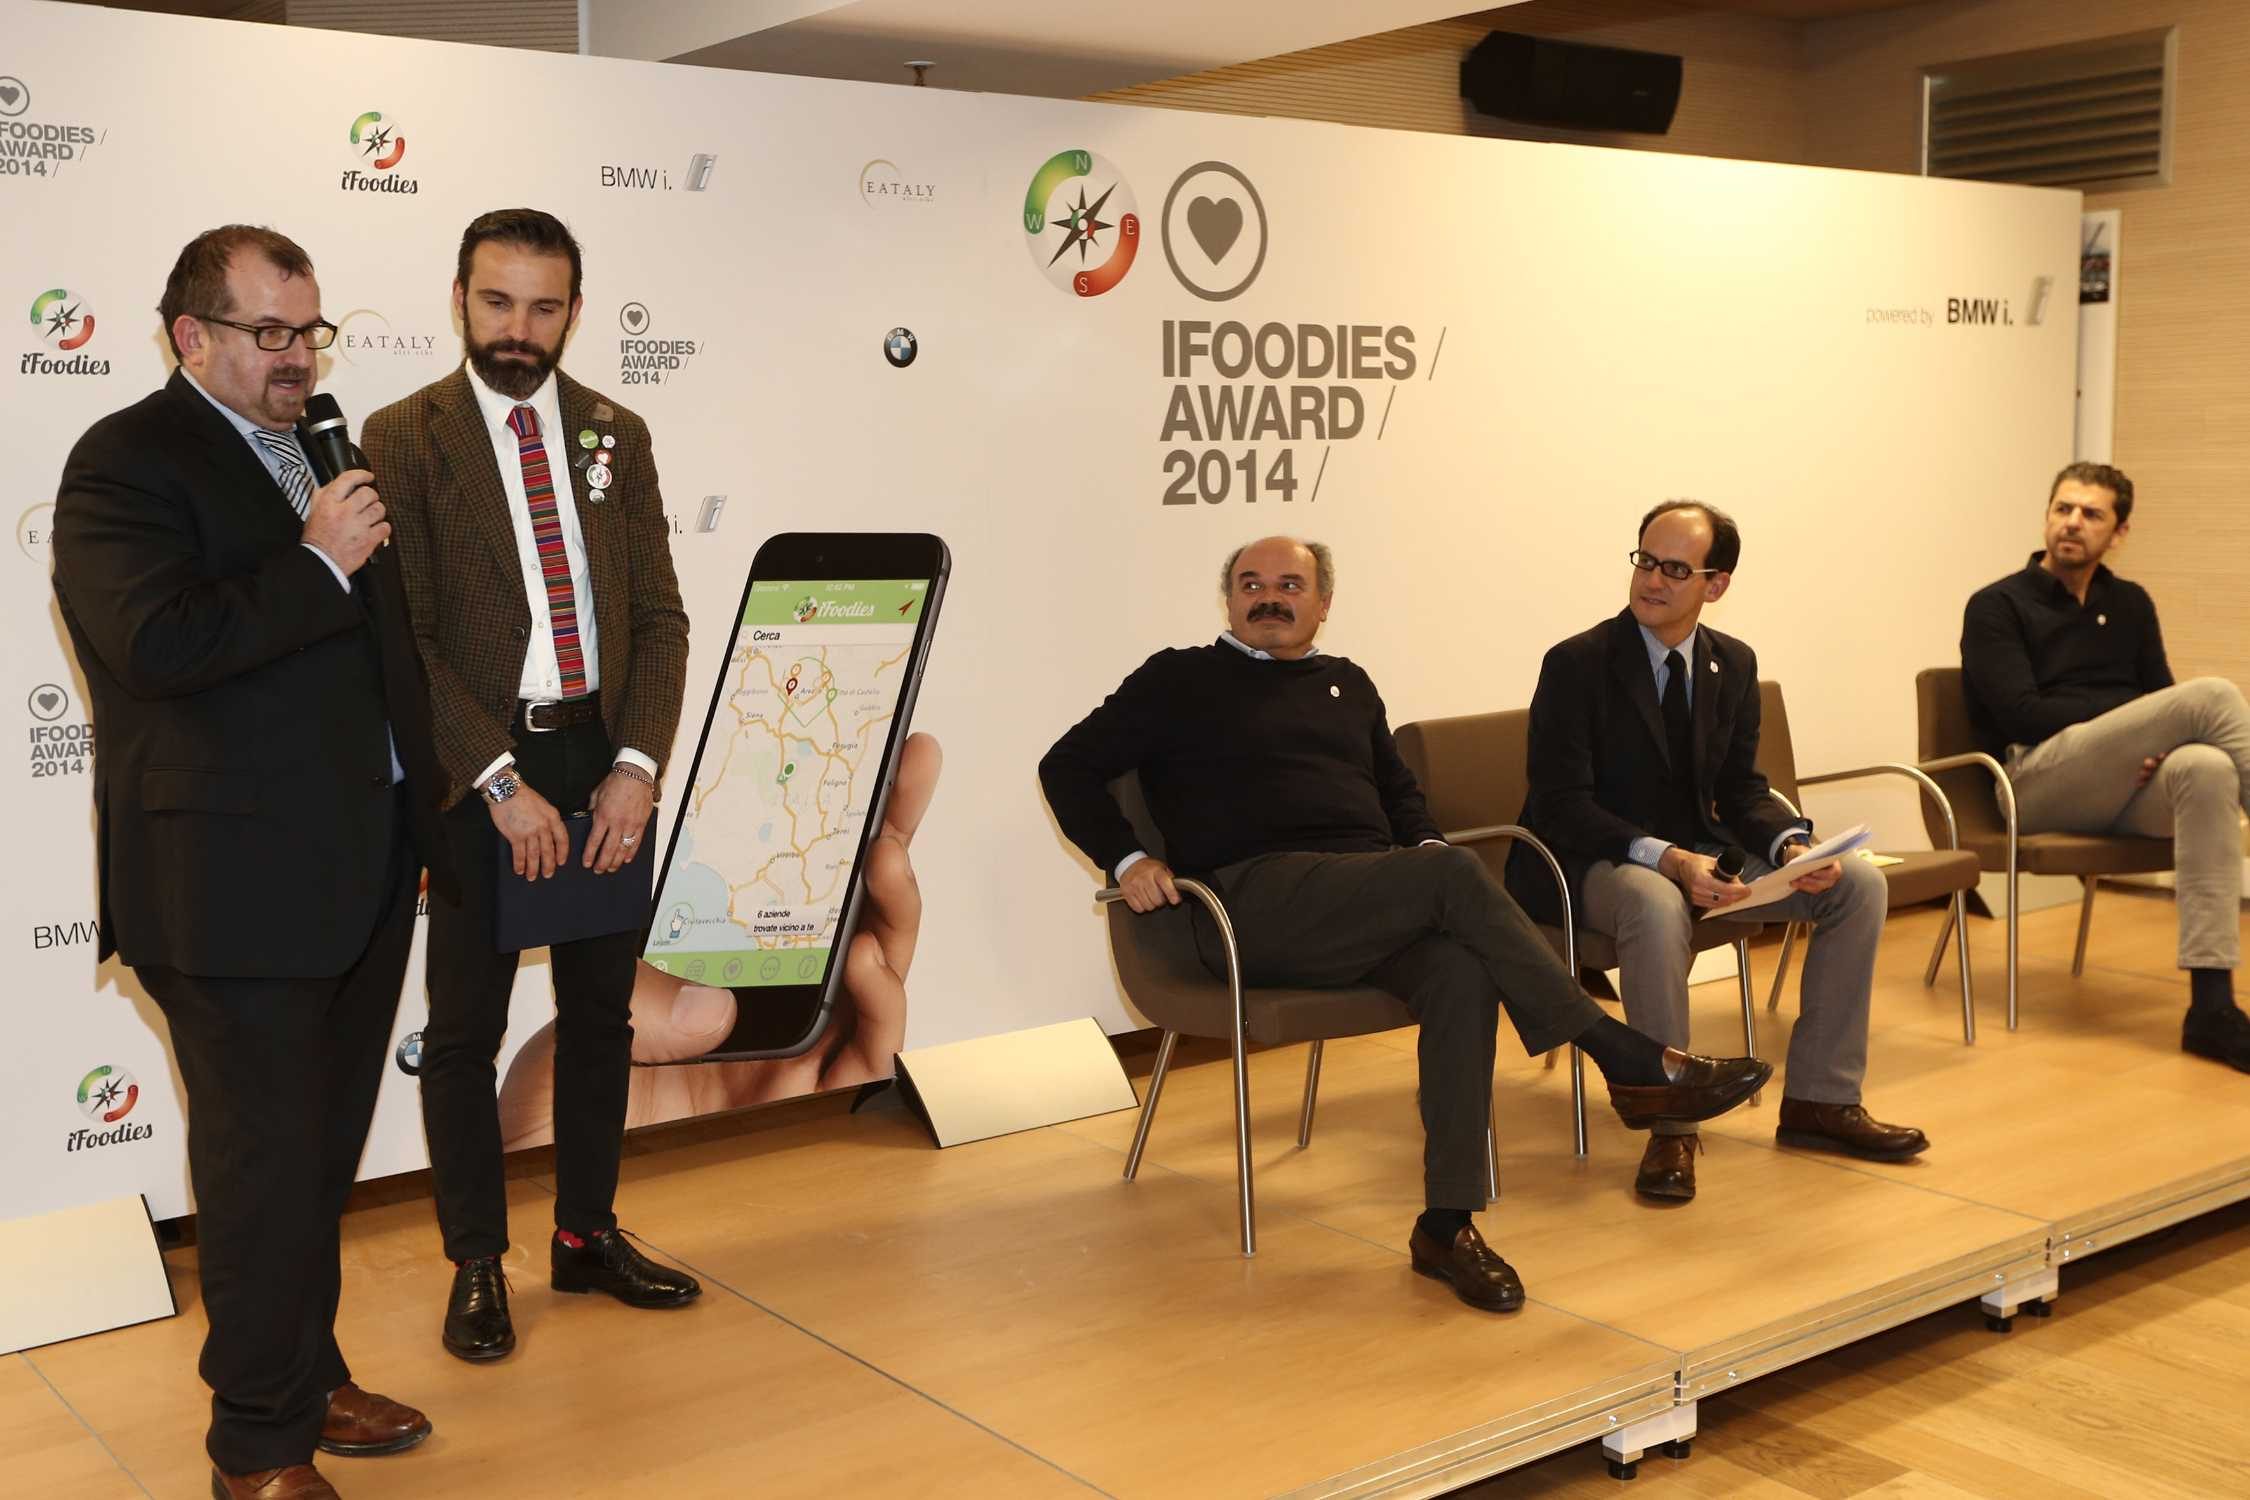 Progetto ifoodies powered by bmw i eataly milano 26 for Eataly milano eventi